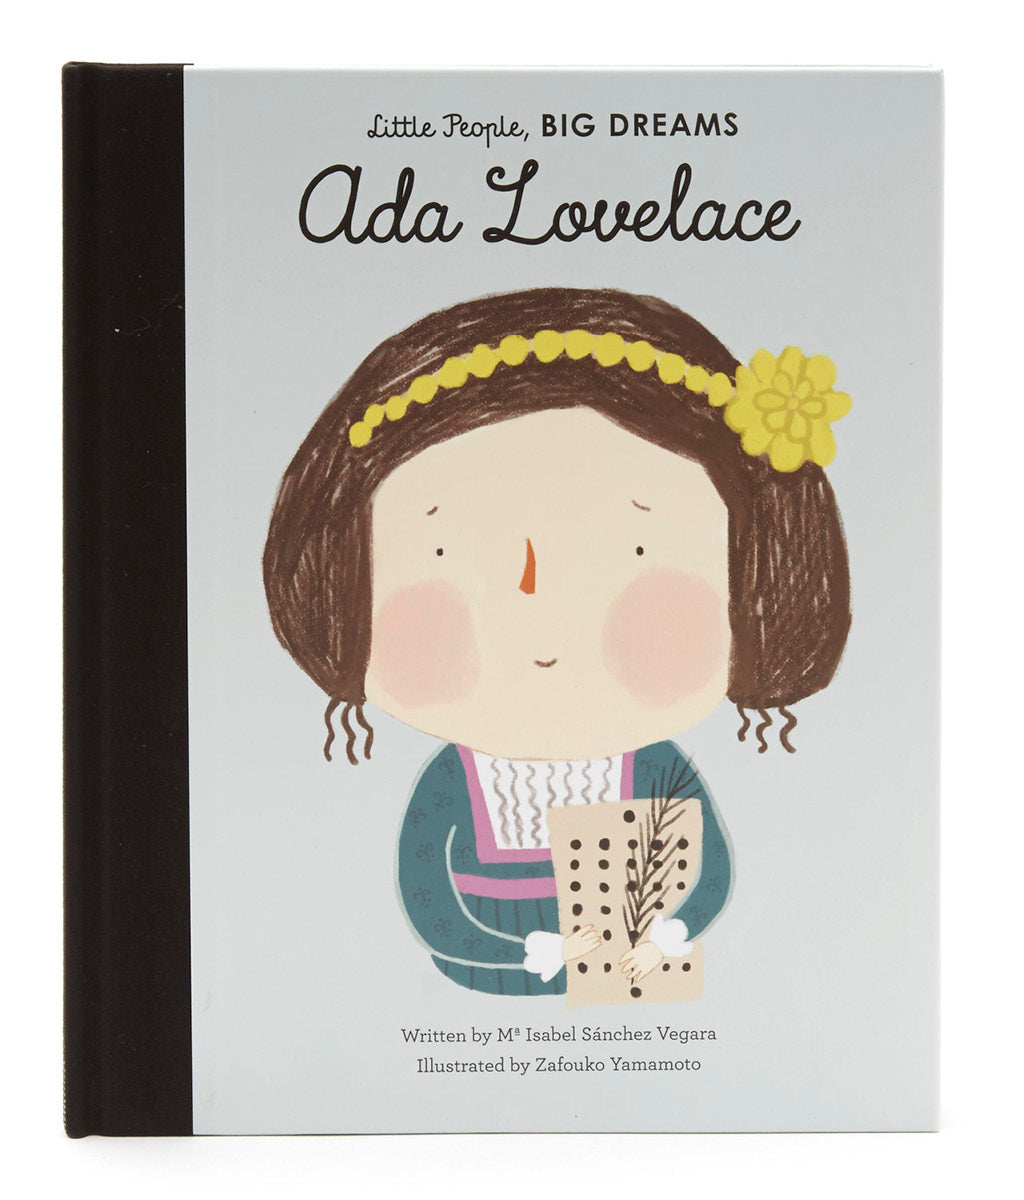 Ada Lovelace by Maria Isabel Sanchez Vegara